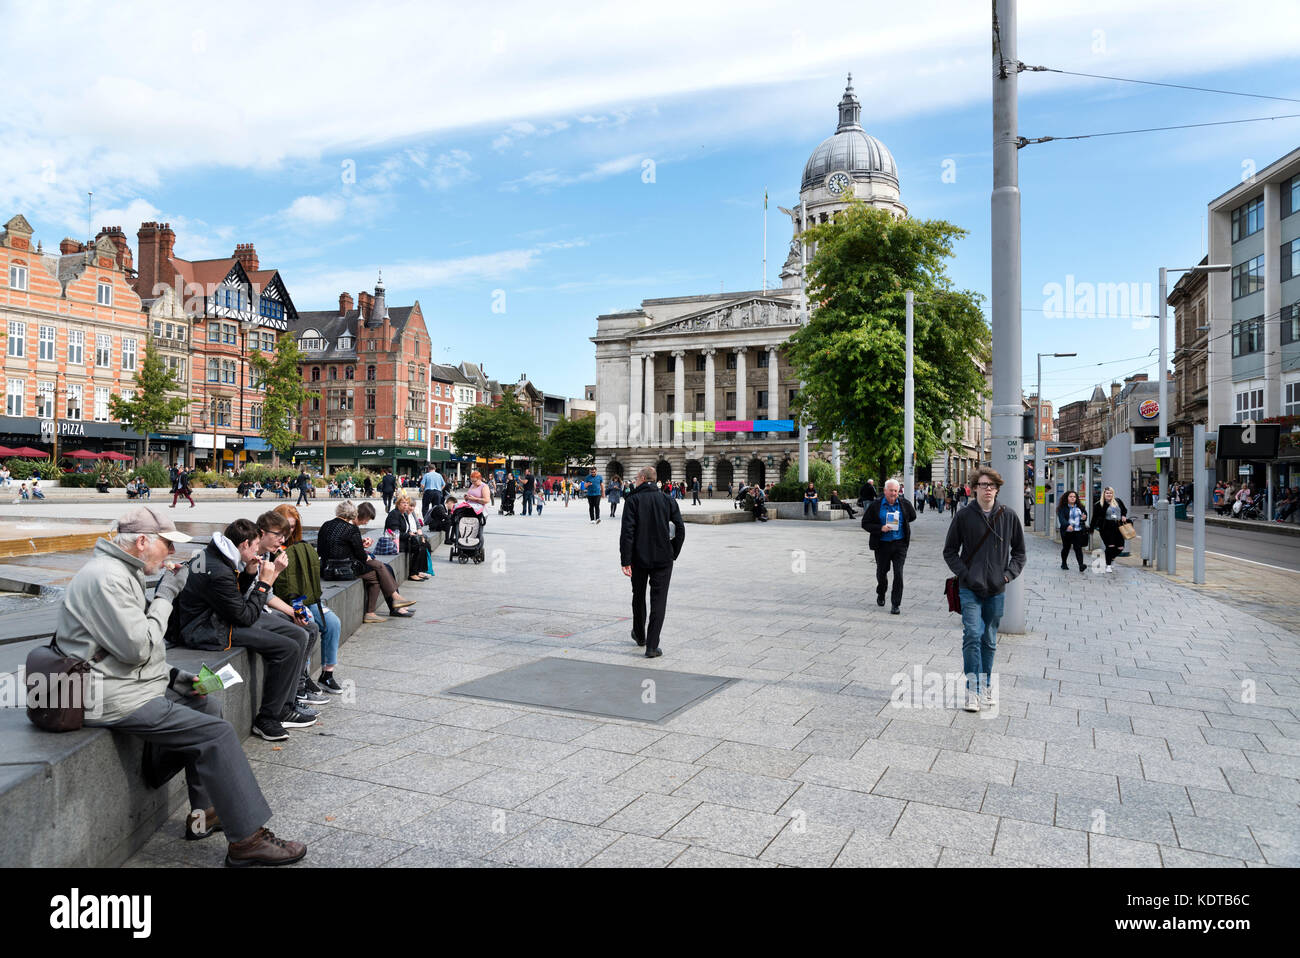 Old Market Square, Nottingham, looking east towards the Council House with fountains in the foreground. - Stock Image